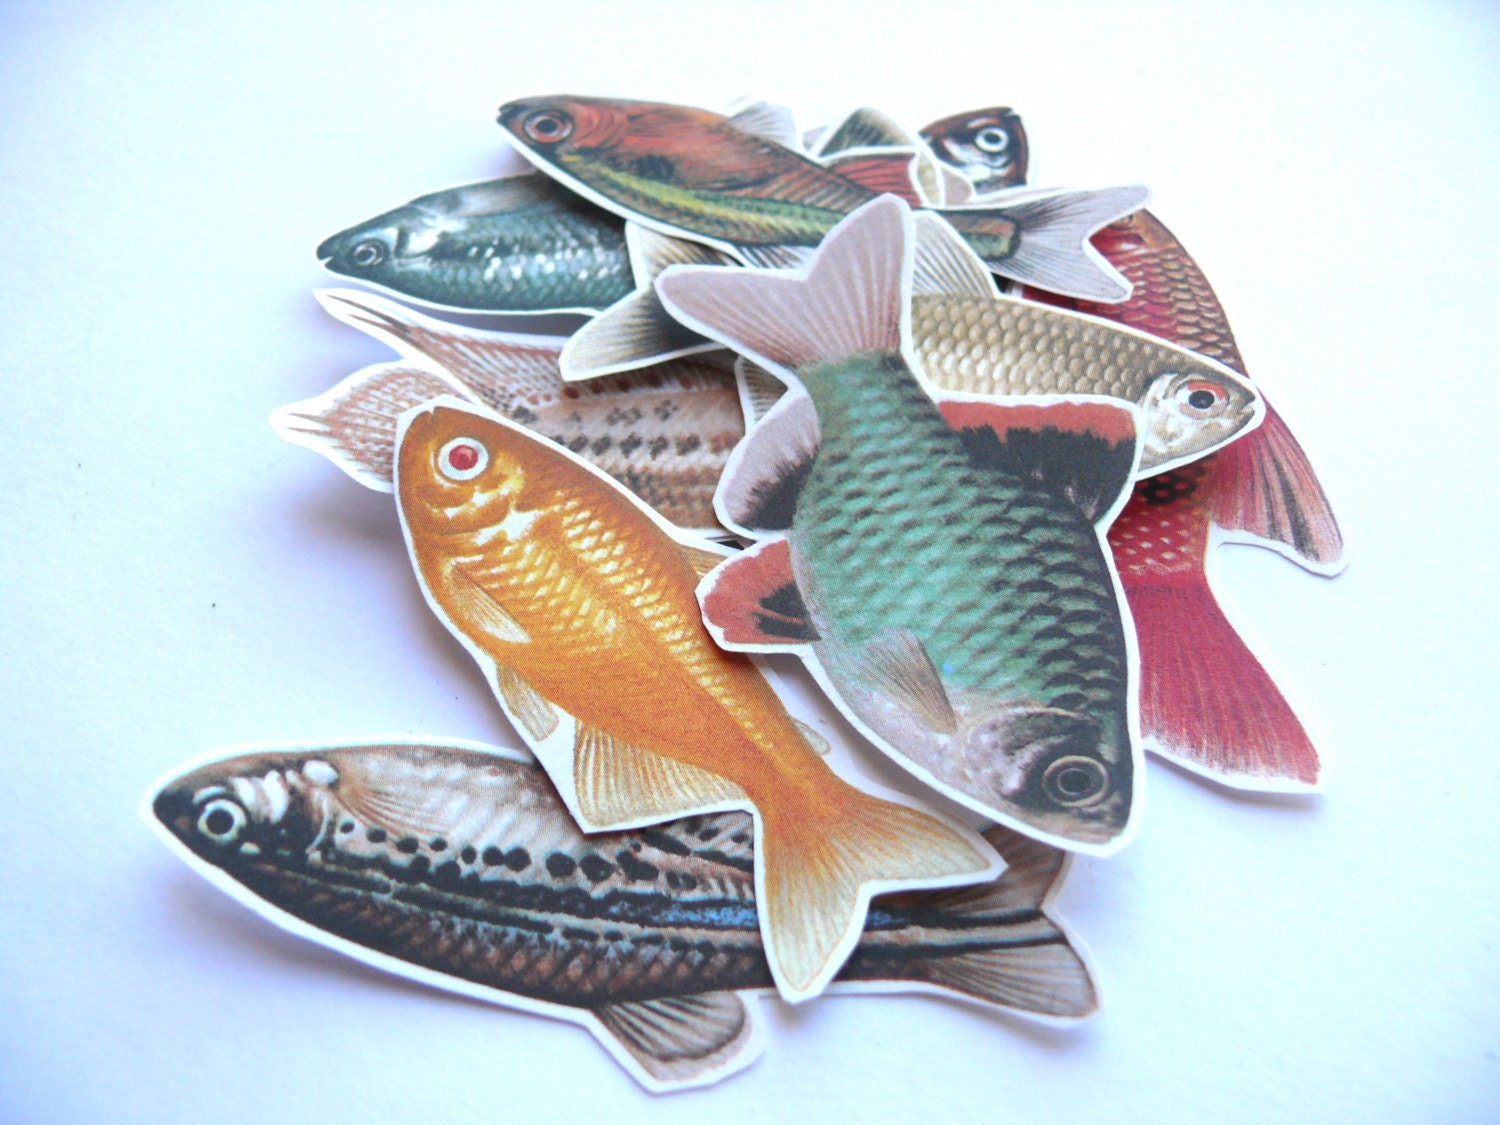 10 Fish Die Cut Clippings Vintage Paper Cut Outs For